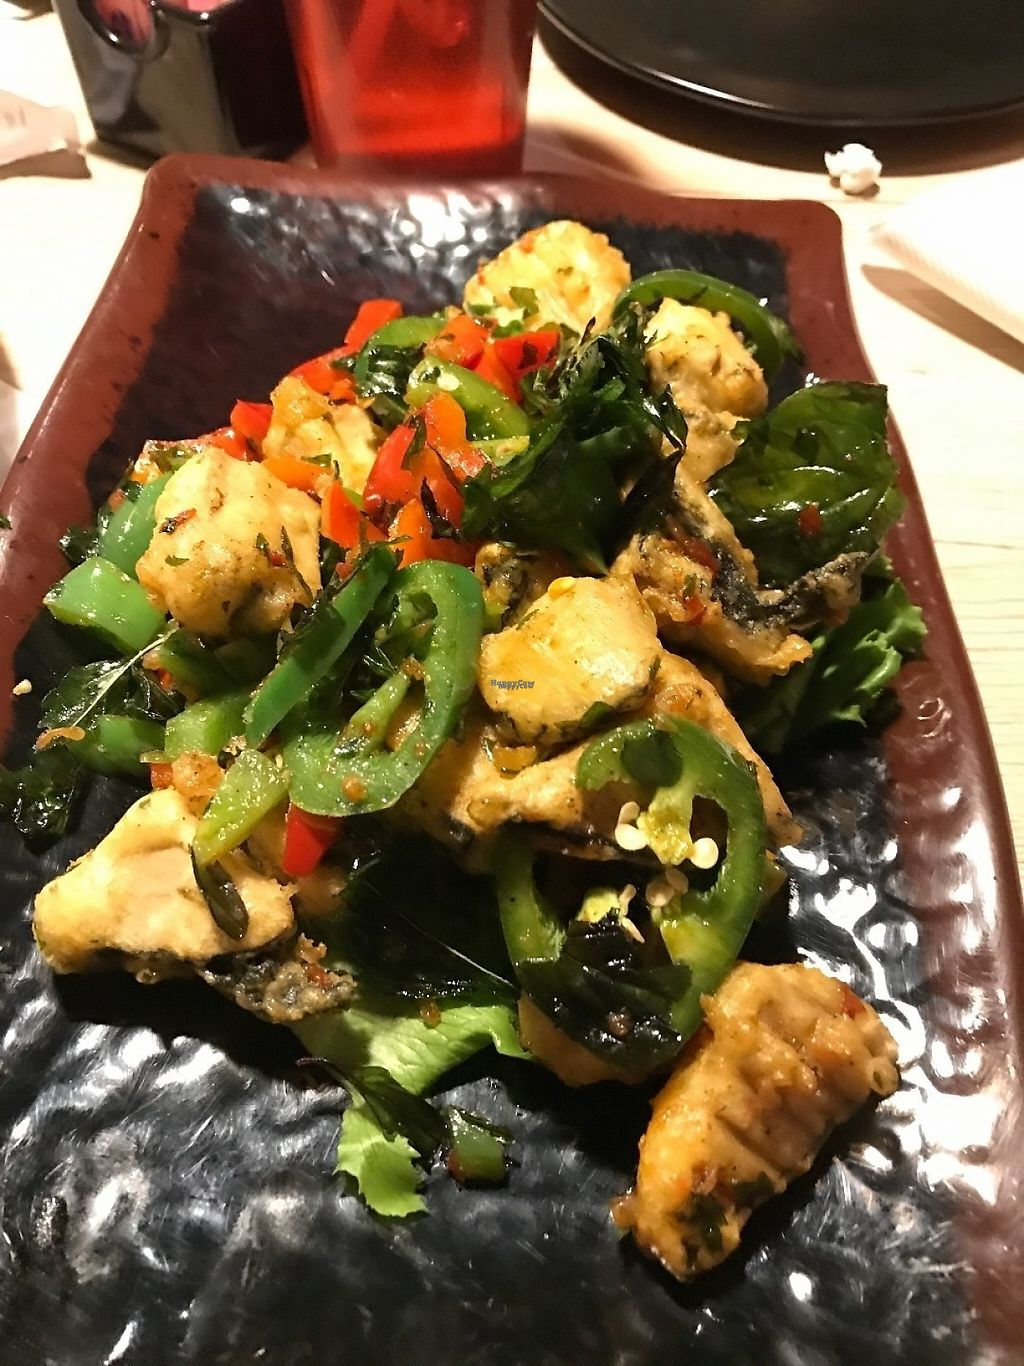 """Photo of Veggie Village  by <a href=""""/members/profile/Tigra220"""">Tigra220</a> <br/>Spiced Salt Fish  <br/> January 27, 2017  - <a href='/contact/abuse/image/76977/217943'>Report</a>"""